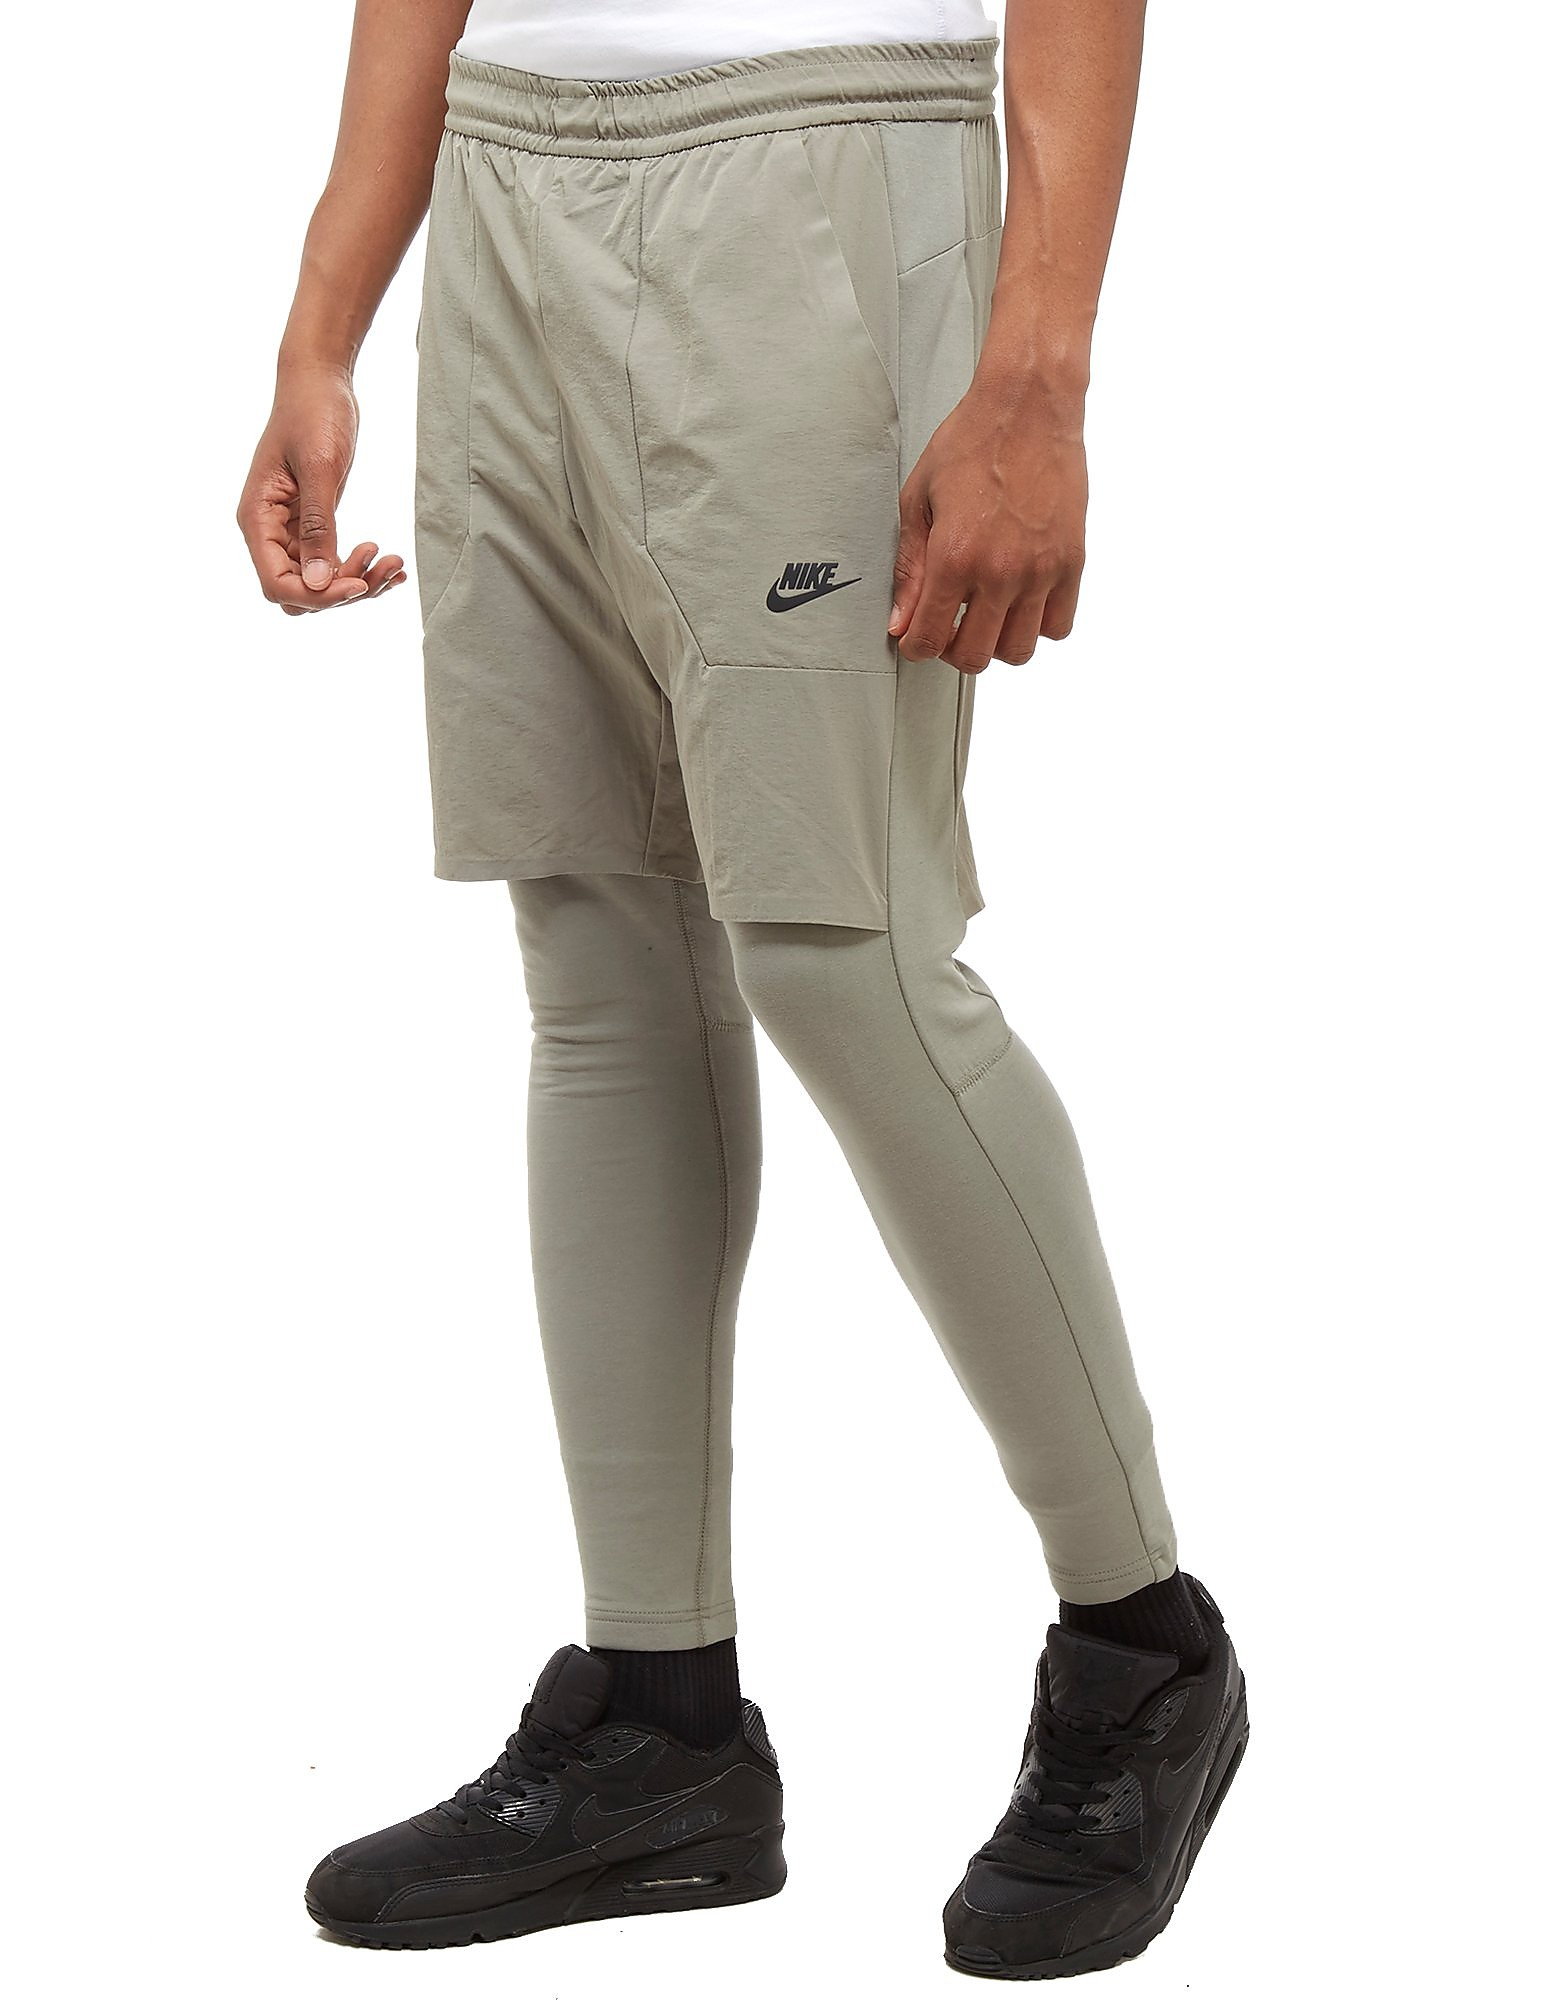 Nike Tech Fleece 2 in 1 Pants